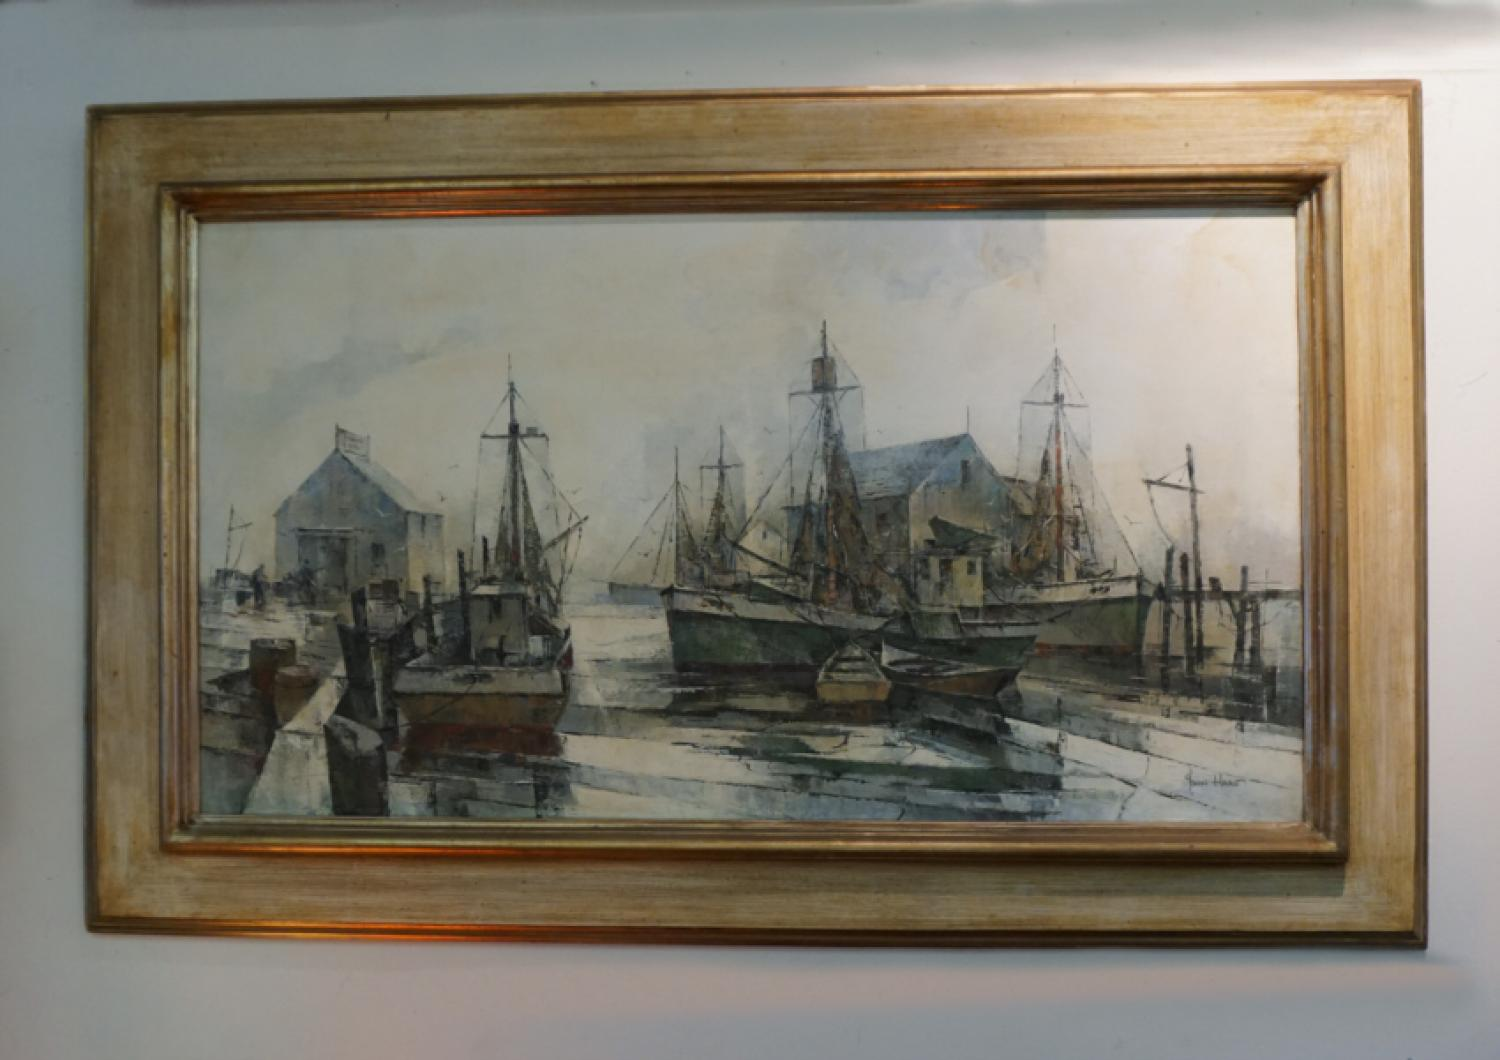 John Cuthbert Hare martime oil painting on canvas ships at port c1950